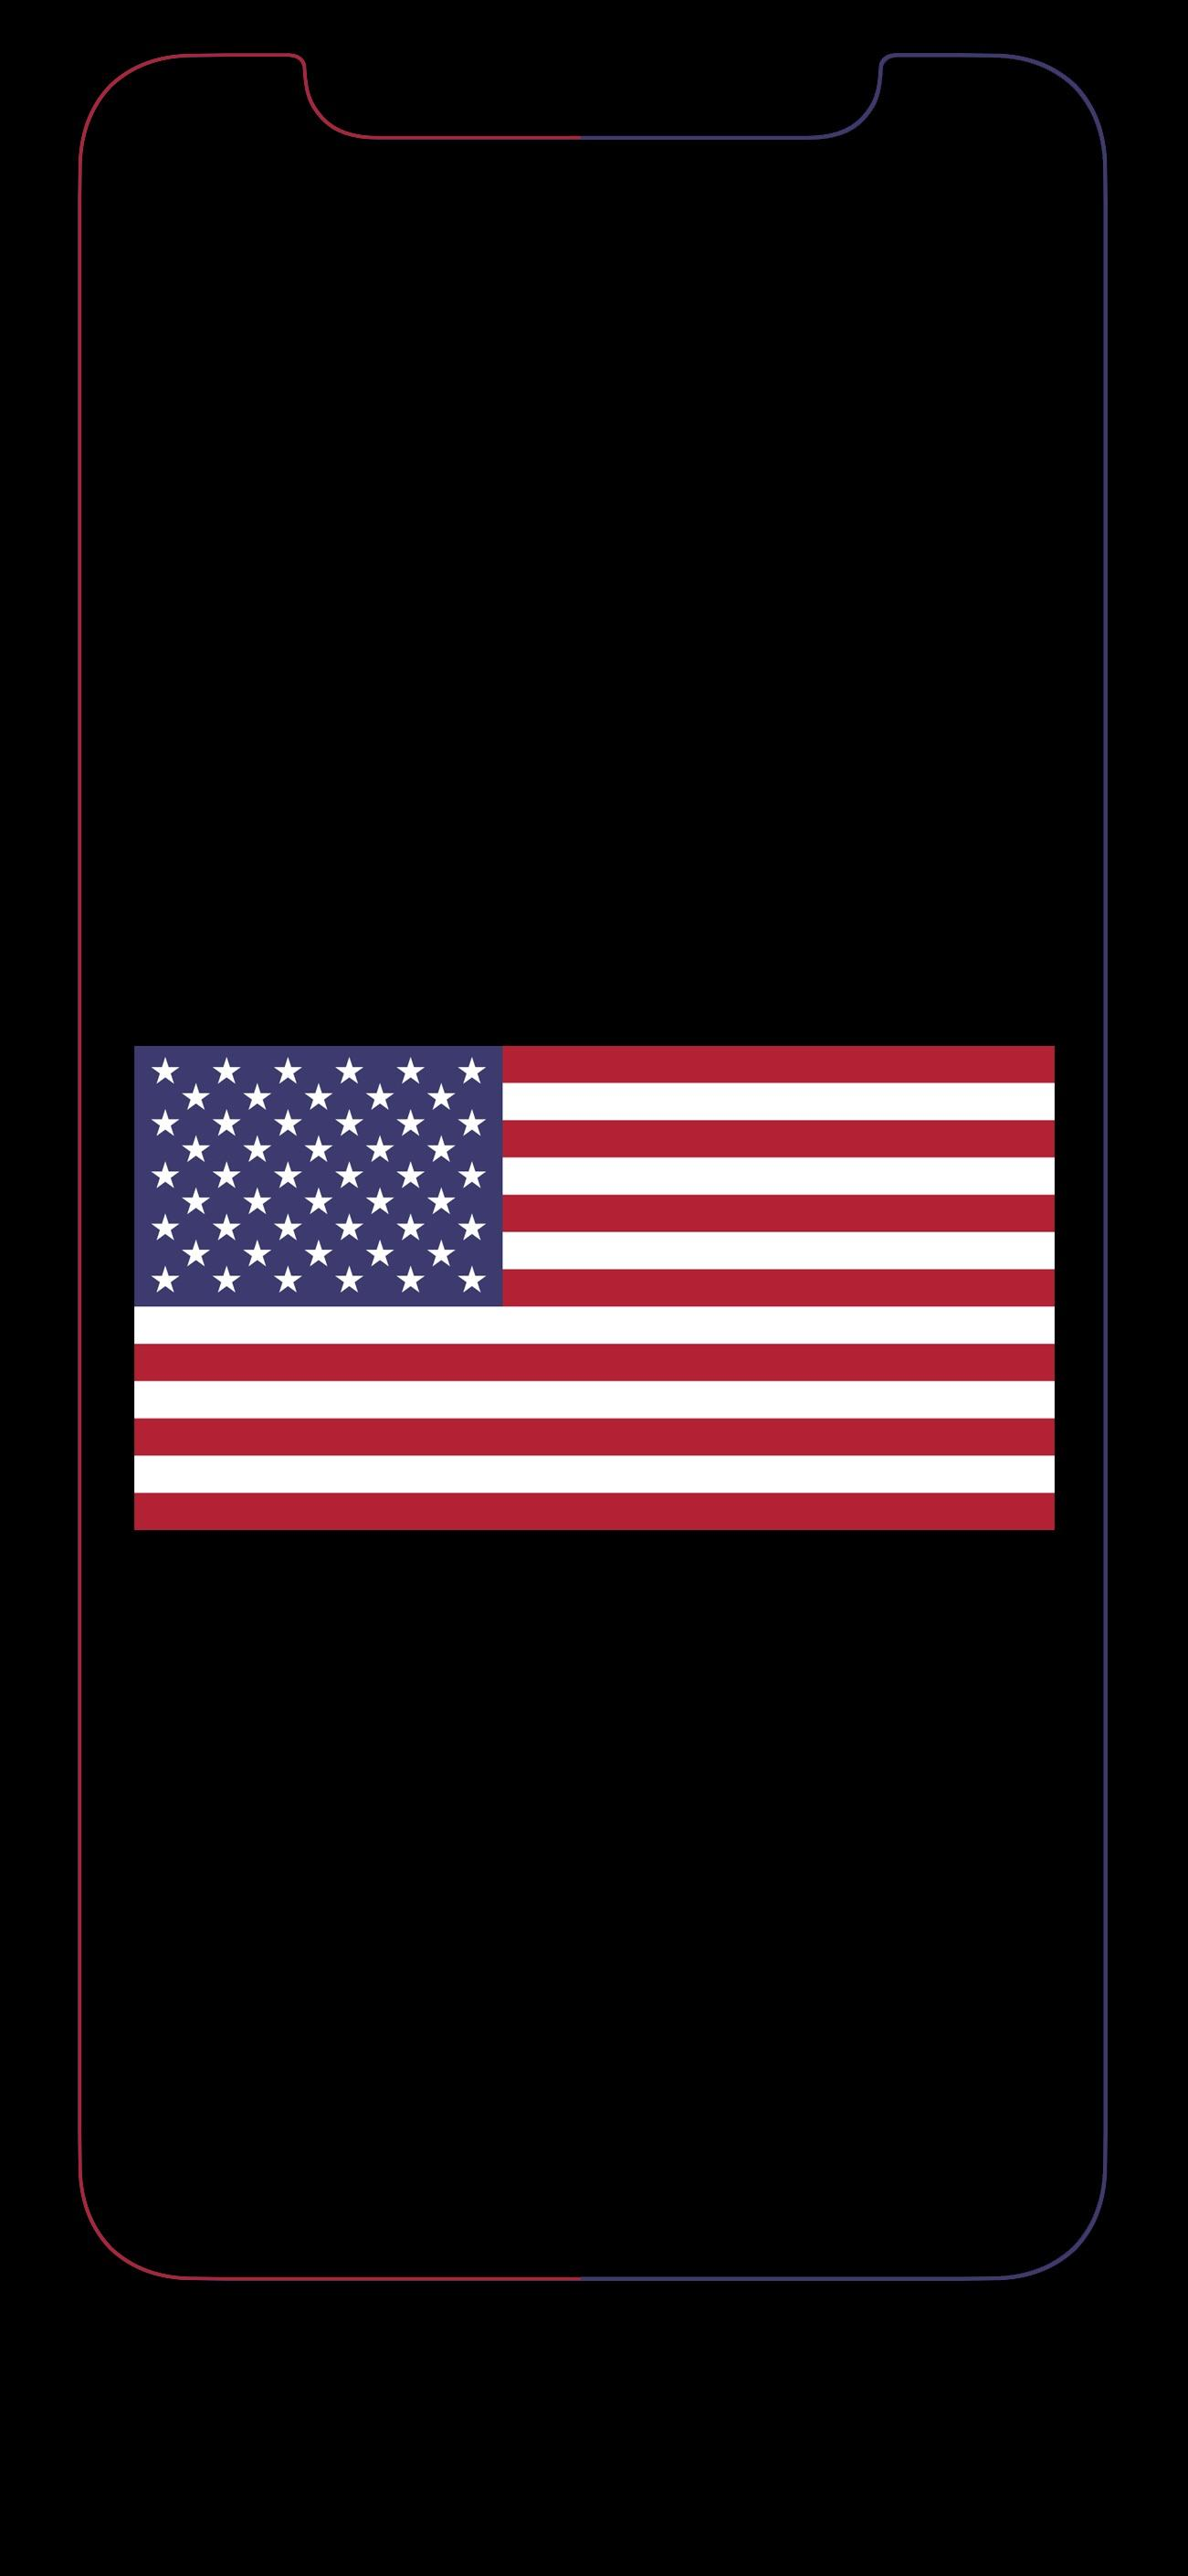 Usa Flag Wallpaper Iphone Posted By Samantha Simpson